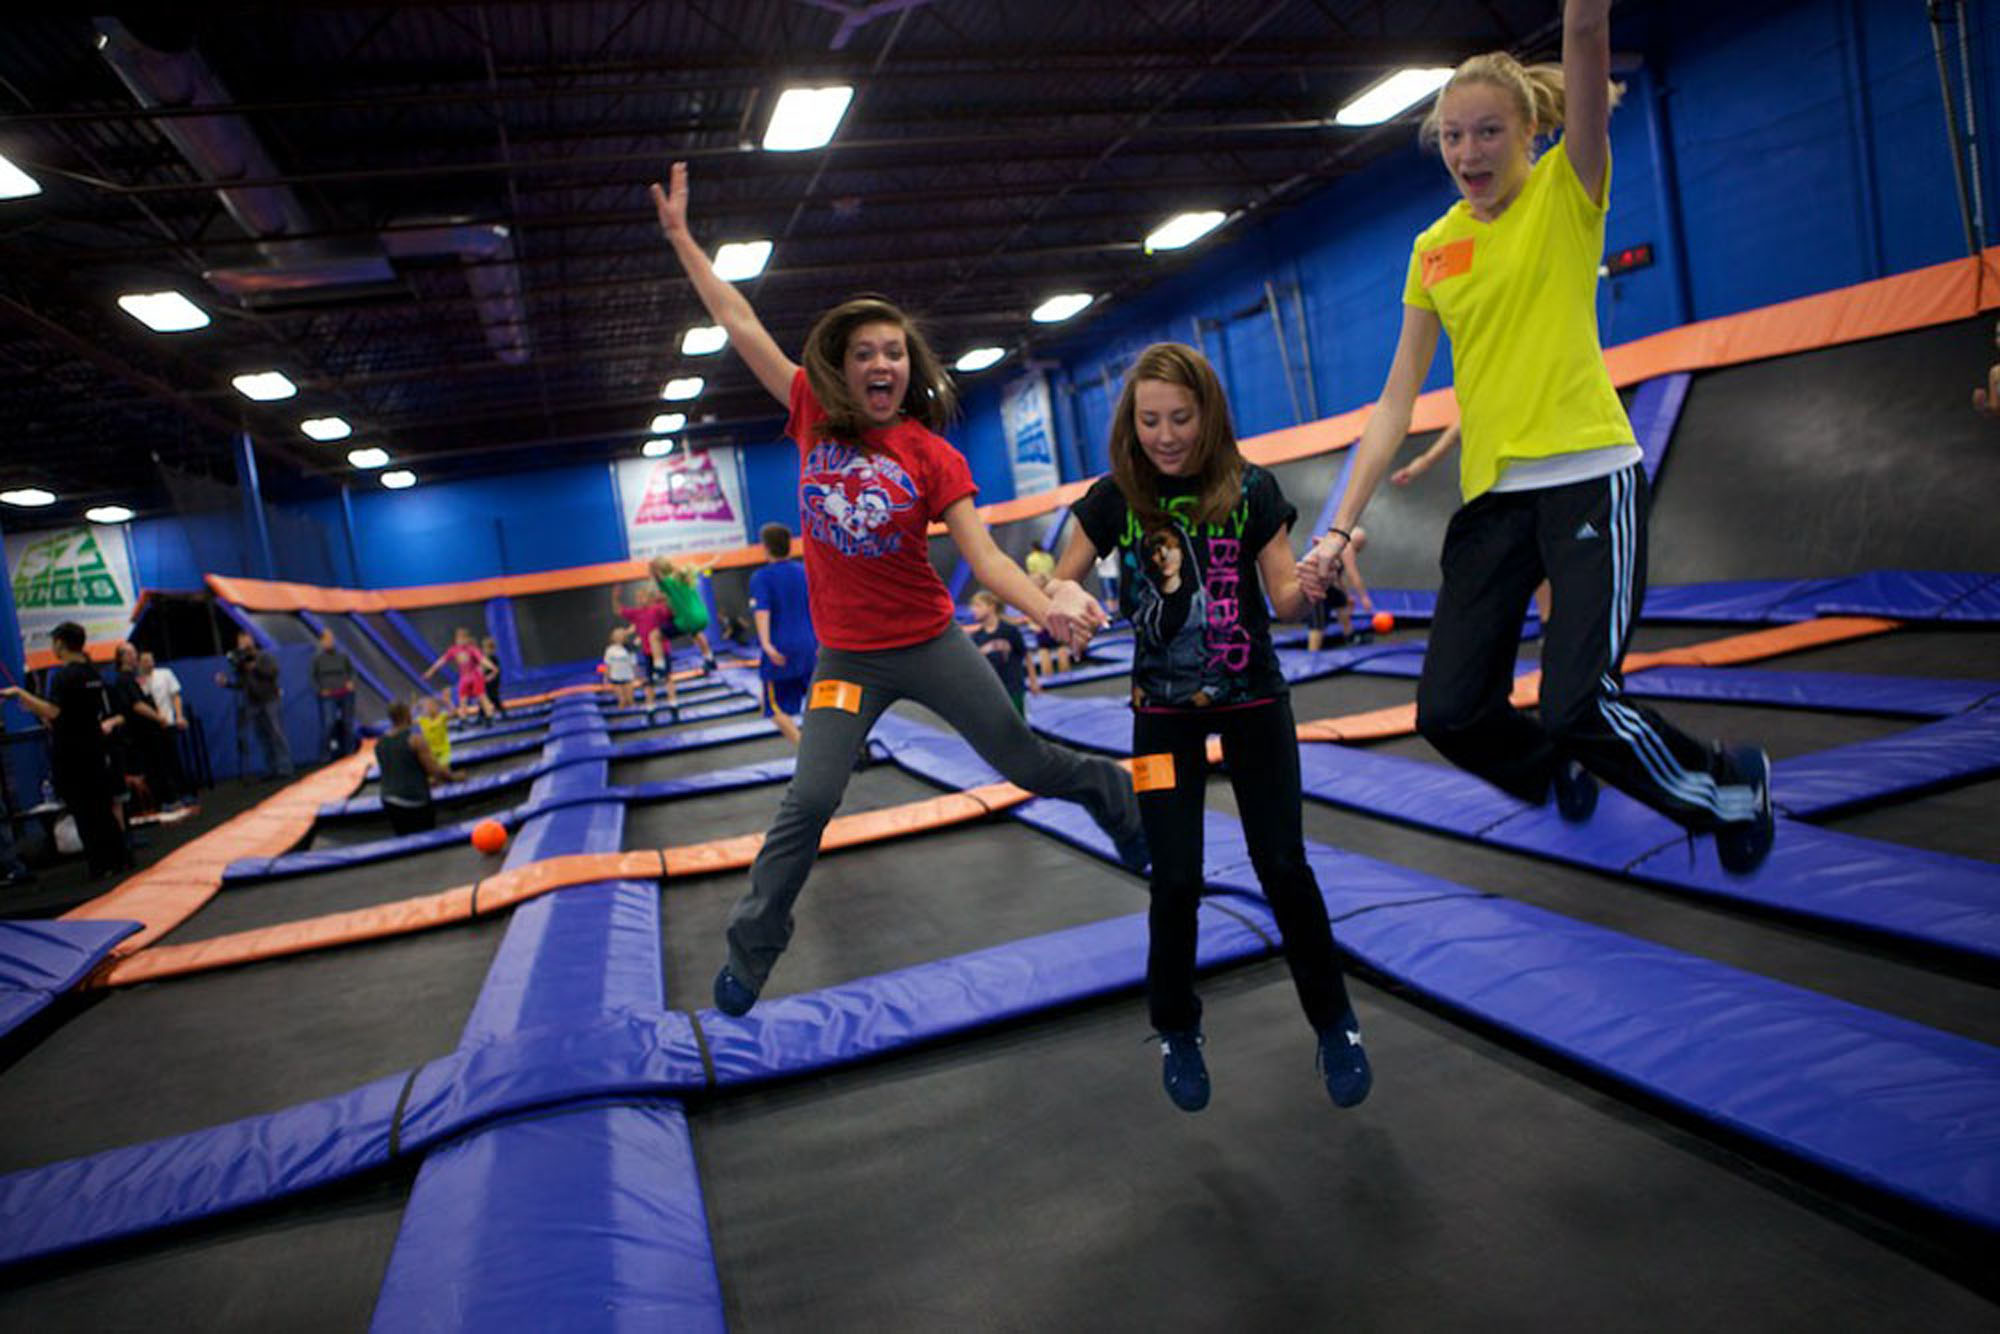 People jumping on trampolines.